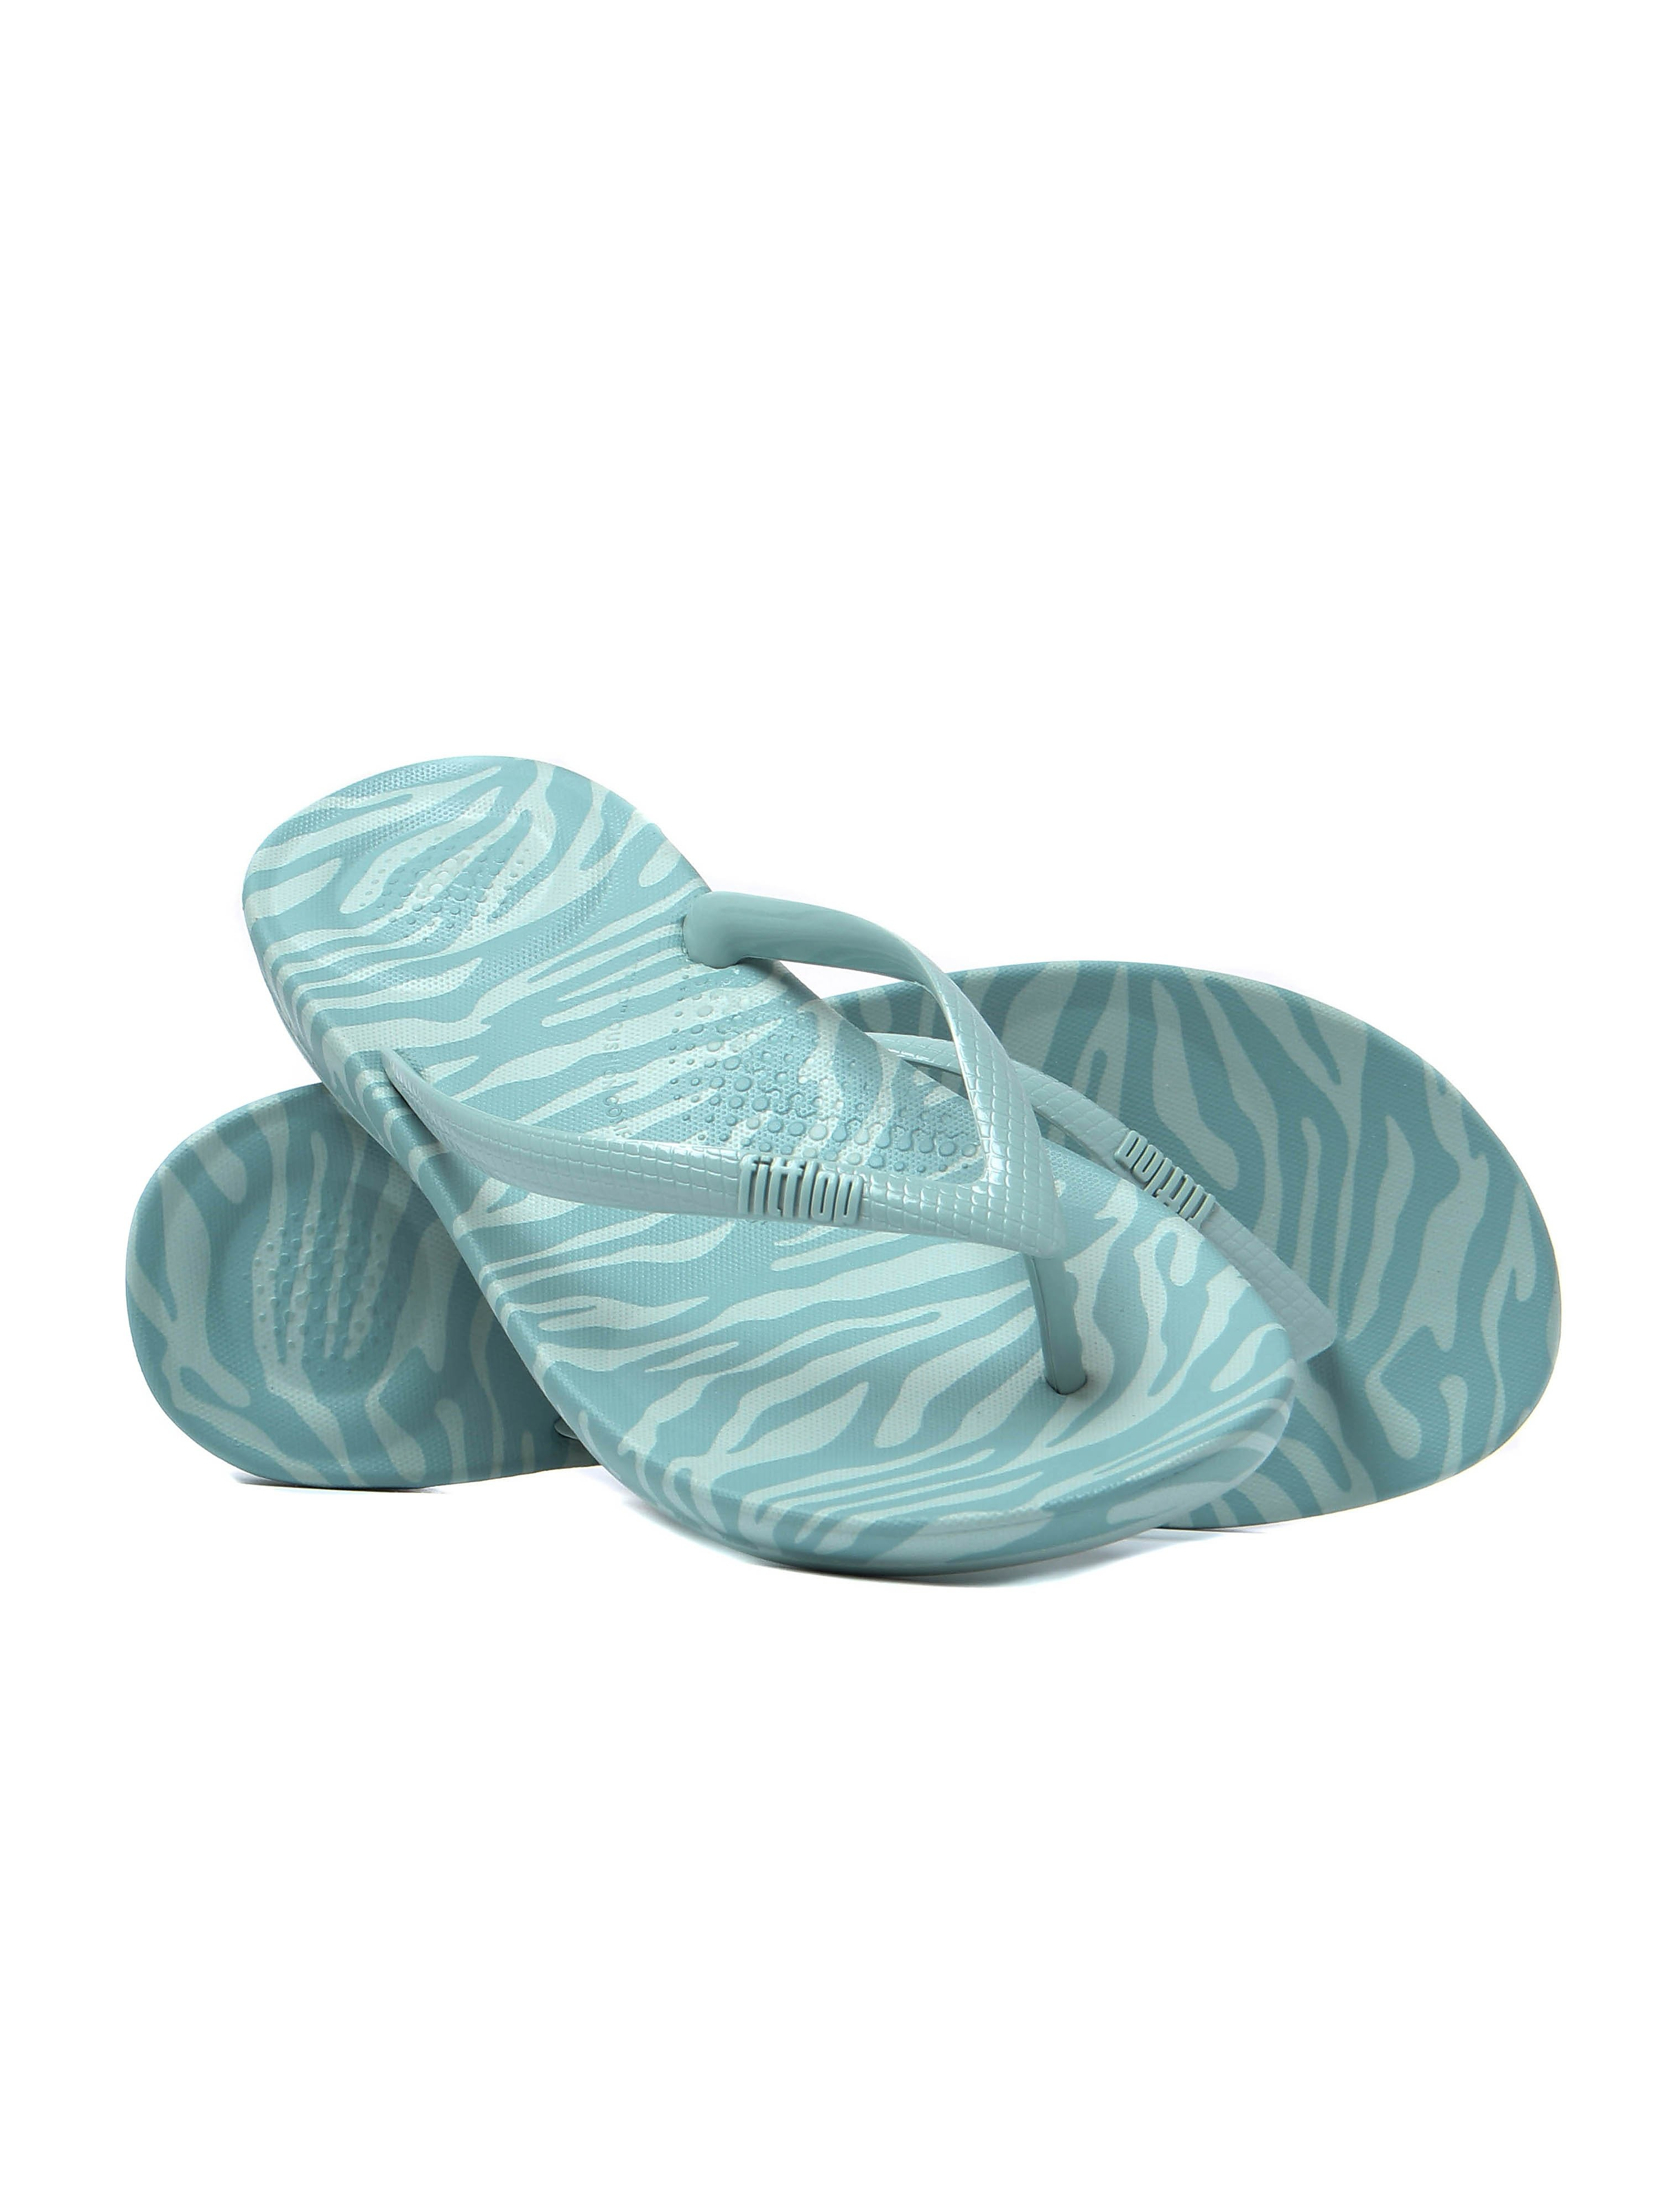 FitFlop Women's IQushion Ergonomic Flip Flops - Aqua Tiger Print